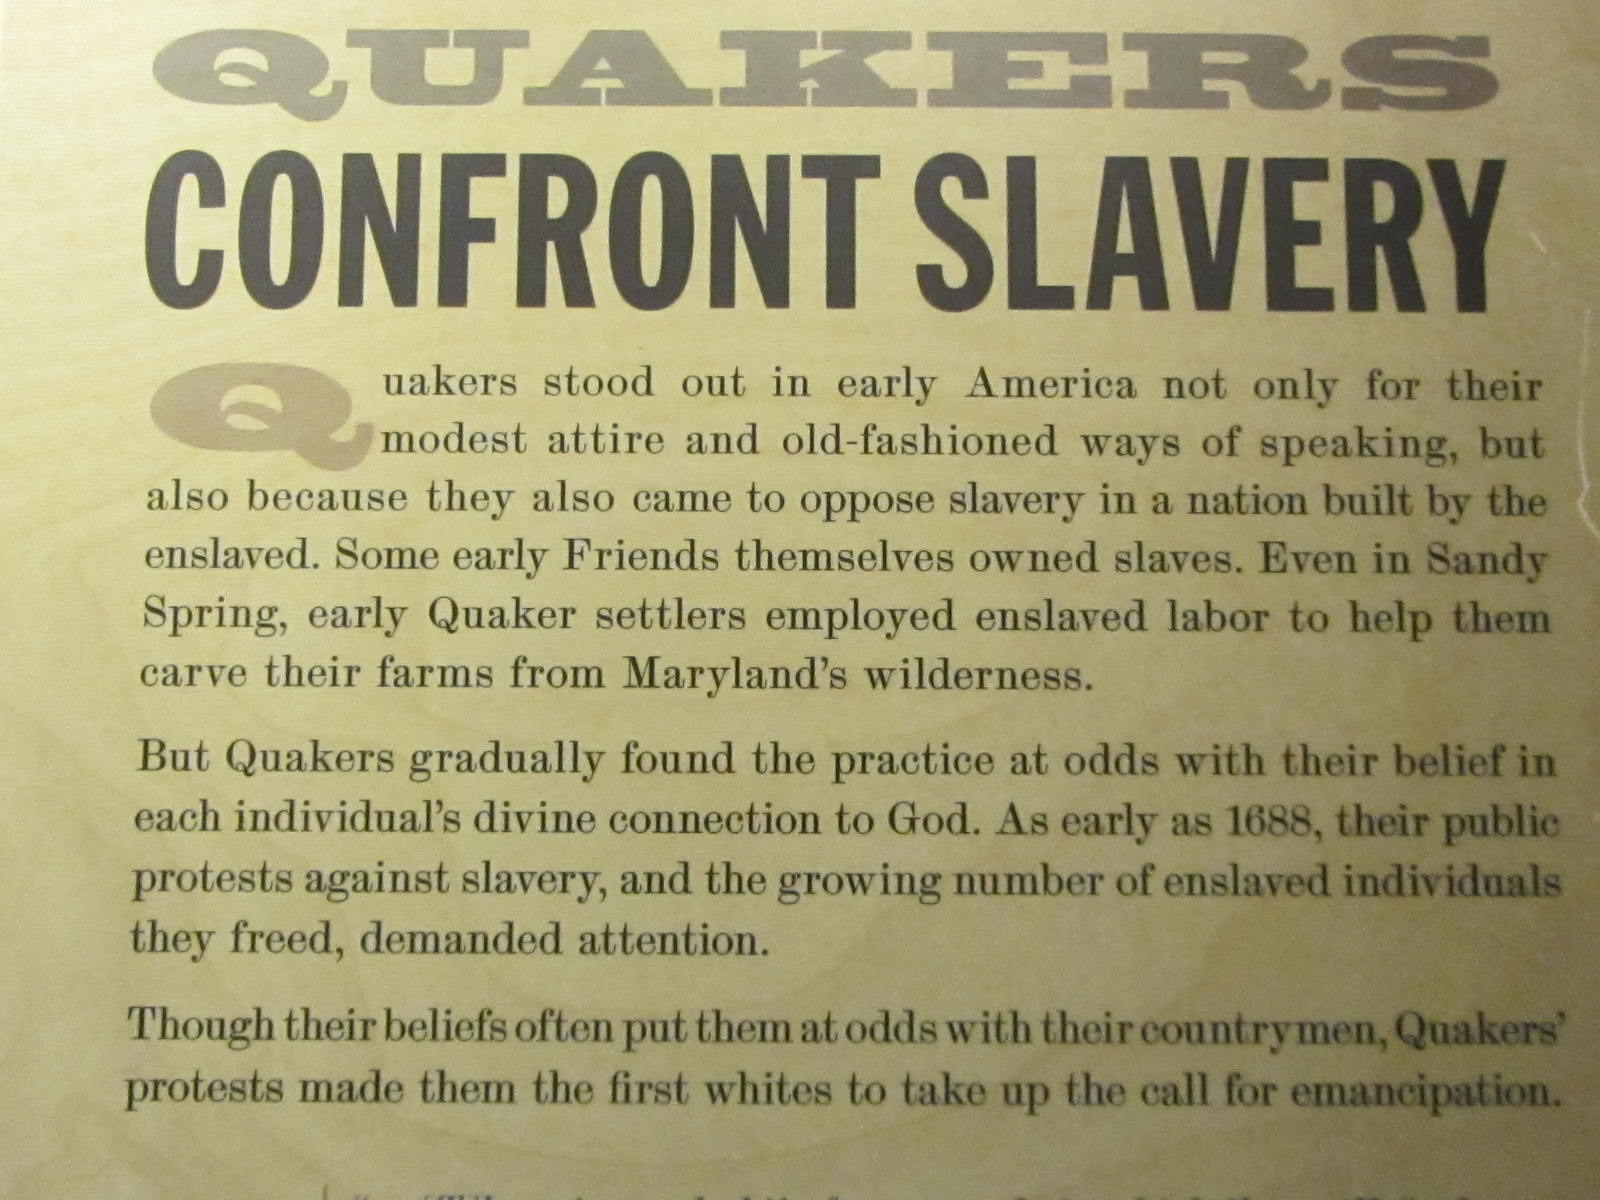 growing opposition to slavery America's growing opposition on slavery and according to william lloyd garrison, through god, we should plant ourselves upon the declaration of independance, and upon the truths of divine revelation (document 2.